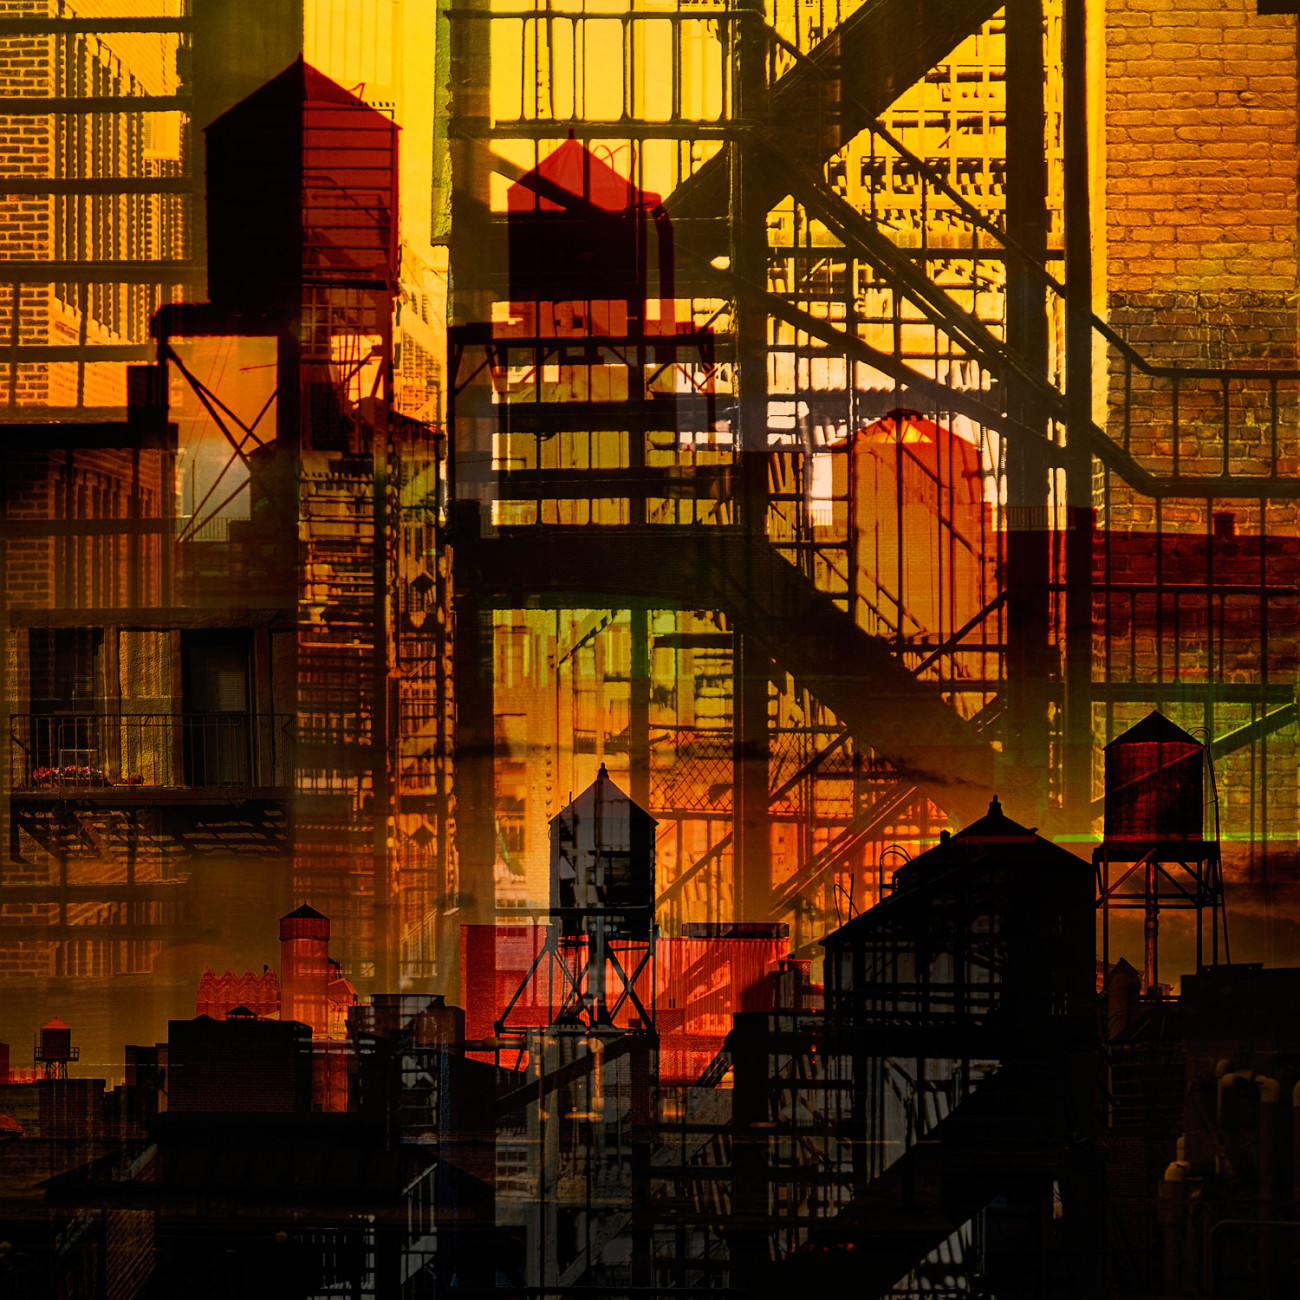 Metropolis - Alleys and rooftops a hidden city, NY, 2015